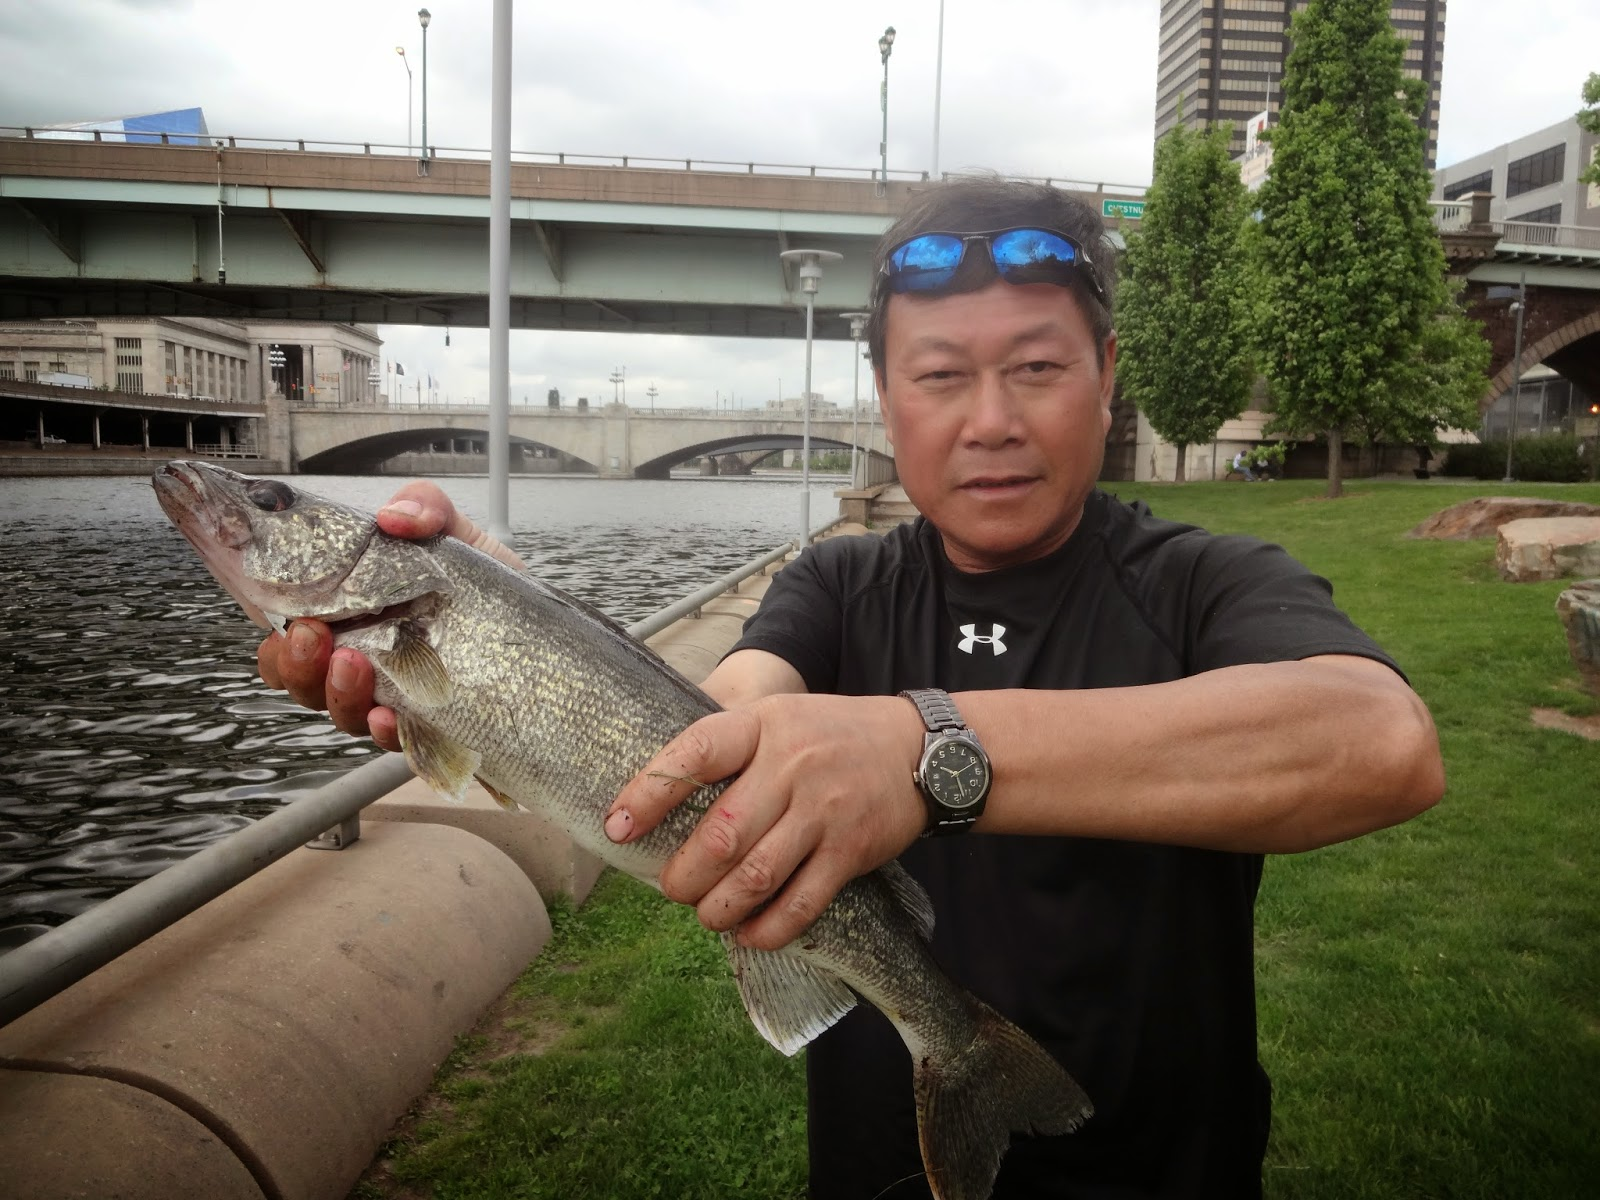 Extreme philly fishing june 2014 for Extreme philly fishing